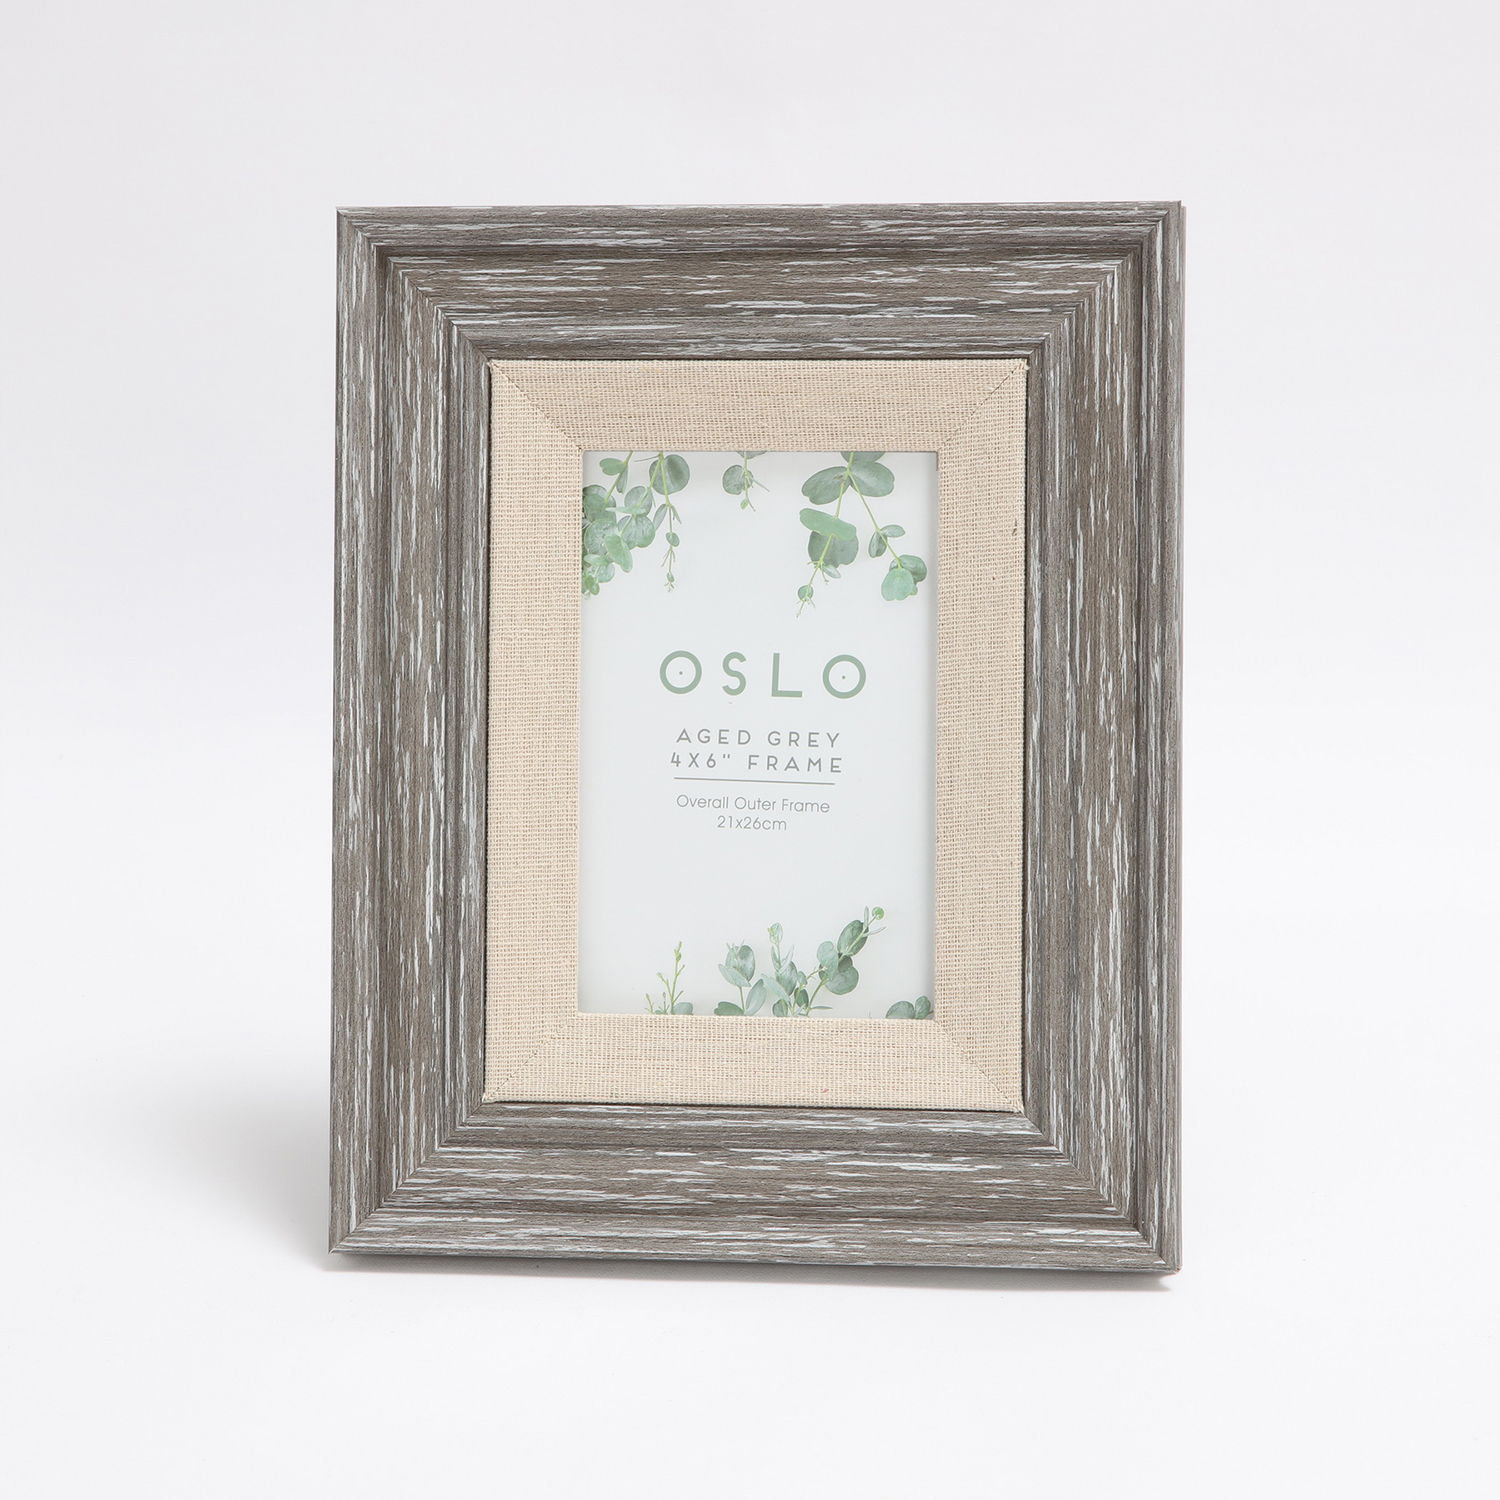 Oslo Aged Grey Frame 4 X 6 Home Store More